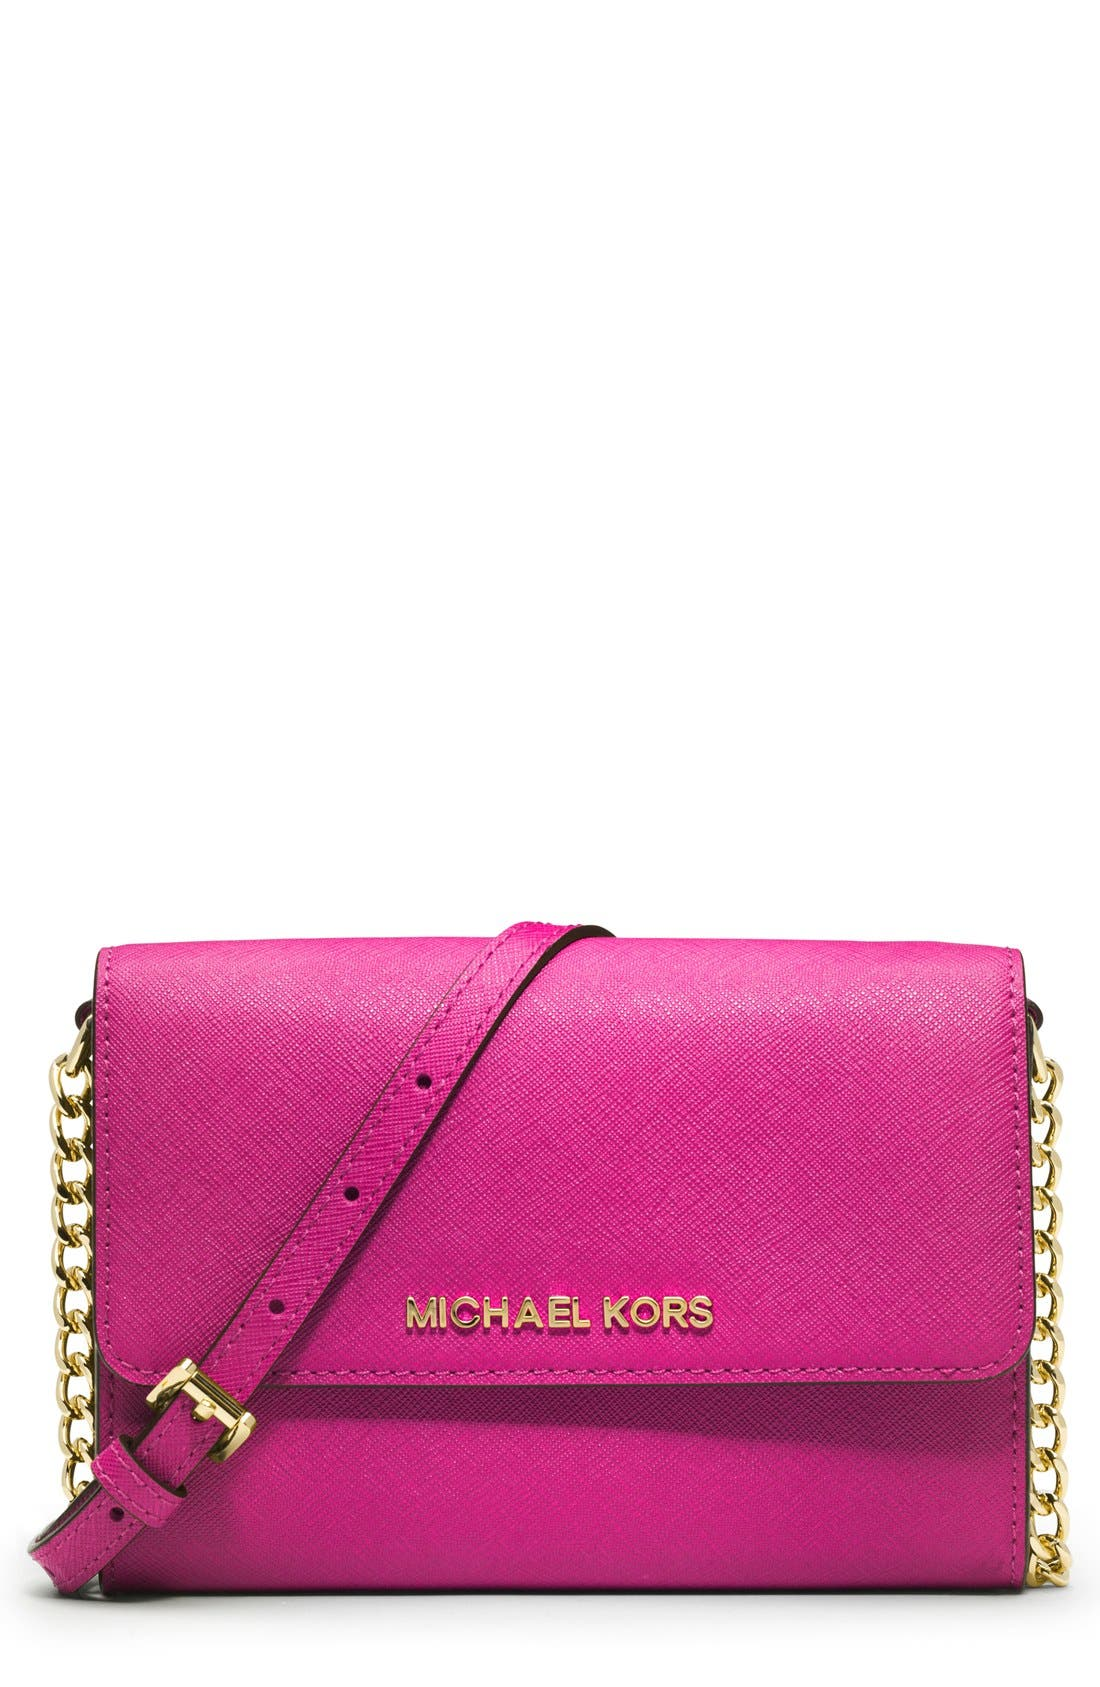 Alternate Image 1 Selected - MICHAEL Michael Kors 'Jet Set - Large Phone' Saffiano Leather Crossbody Bag